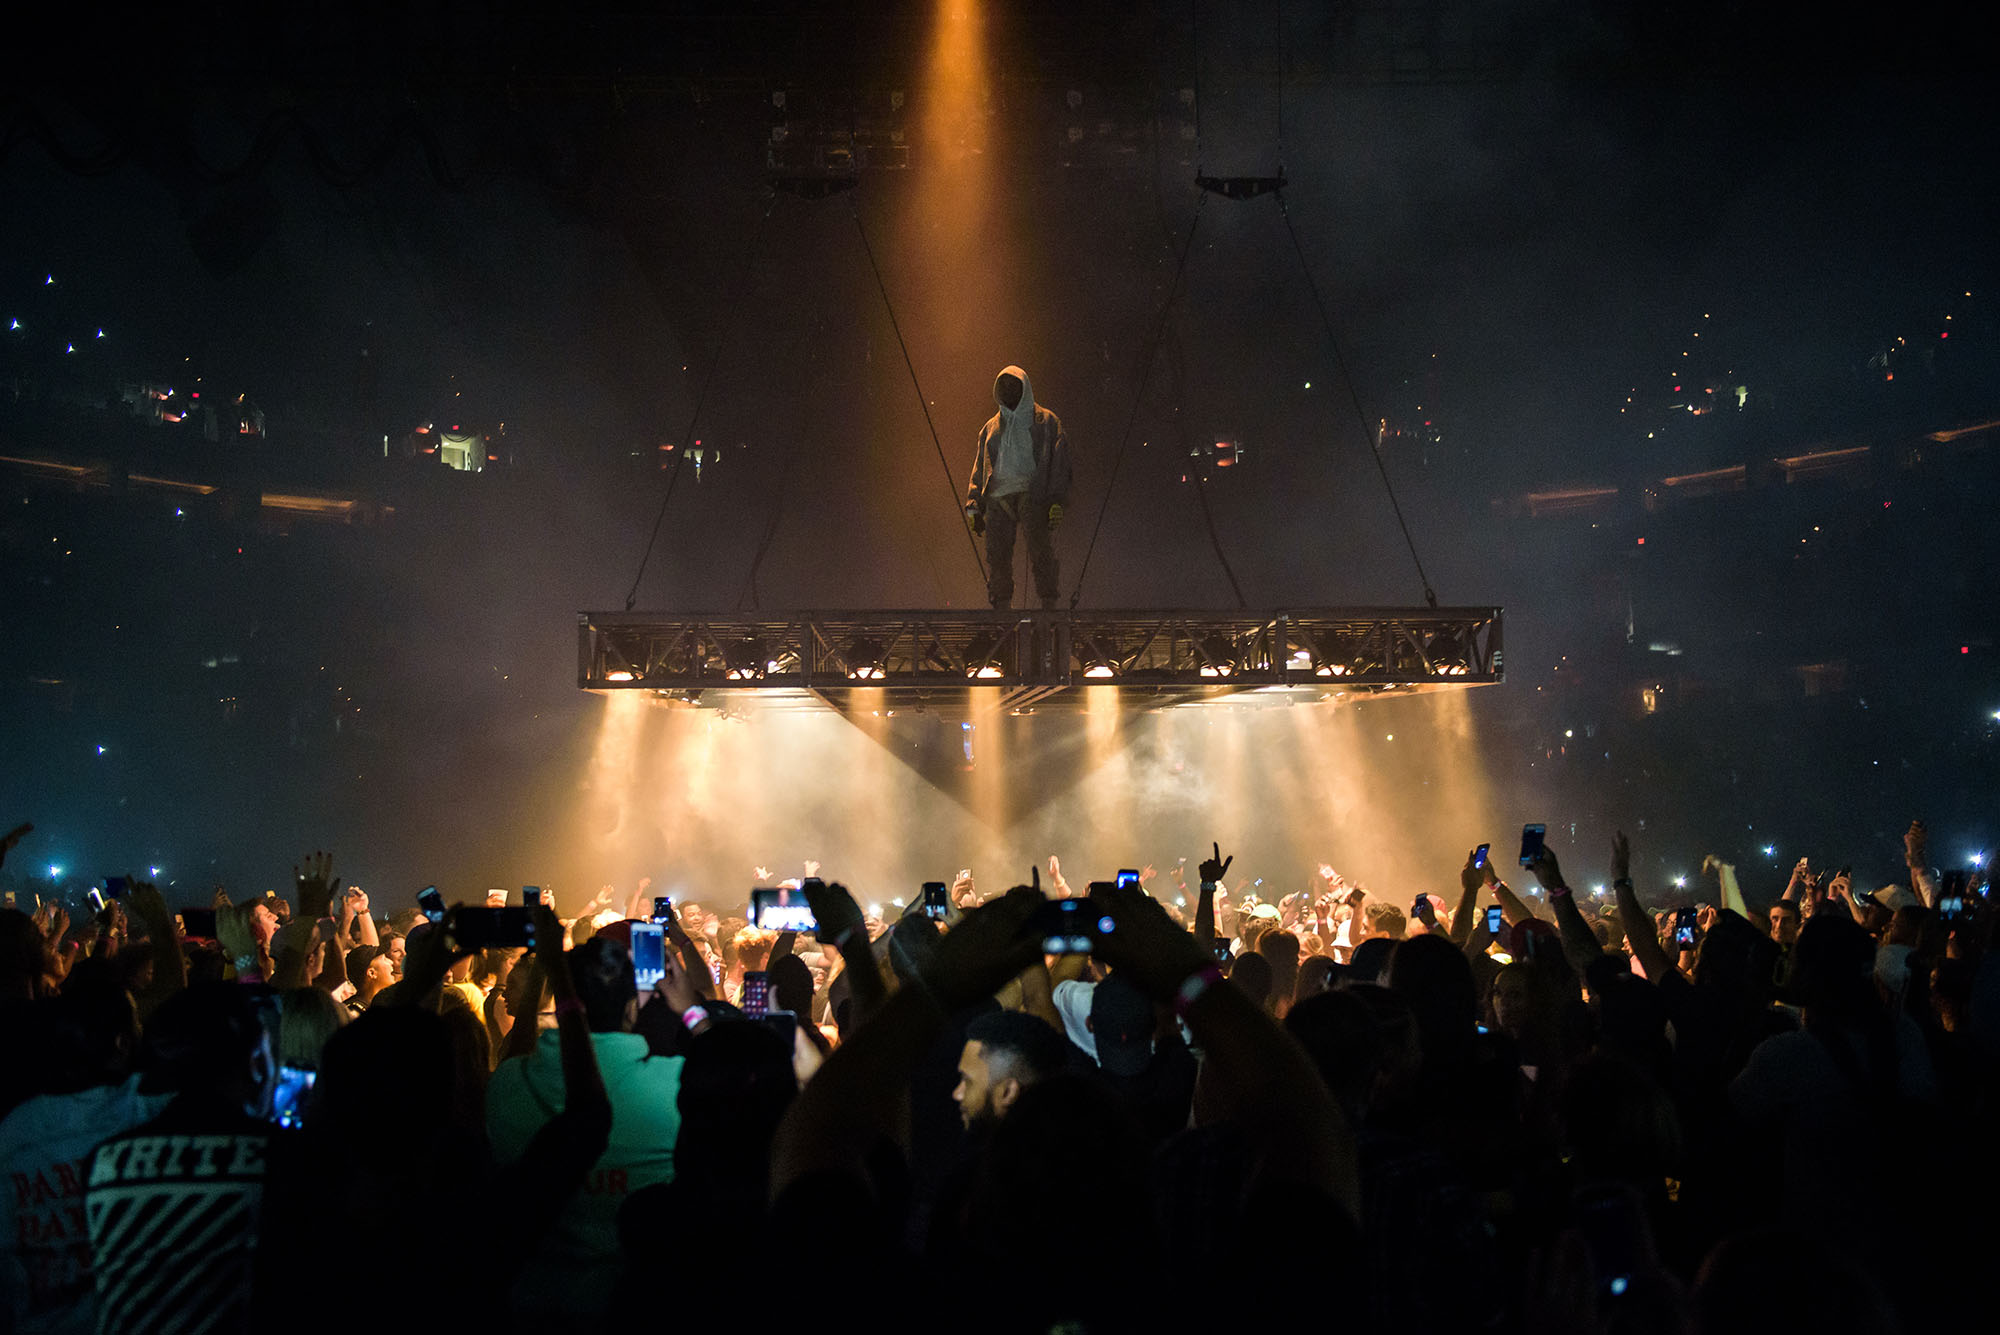 Kanye West performs at the Verizon Center in Washington, D.C. as part of his Saint Pablo Tour.  West spent the show suspended above the audience, performing on a stage that moved around the arena.   (Photo by Kyle Gustafson / For The Washington Post via Getty Images)